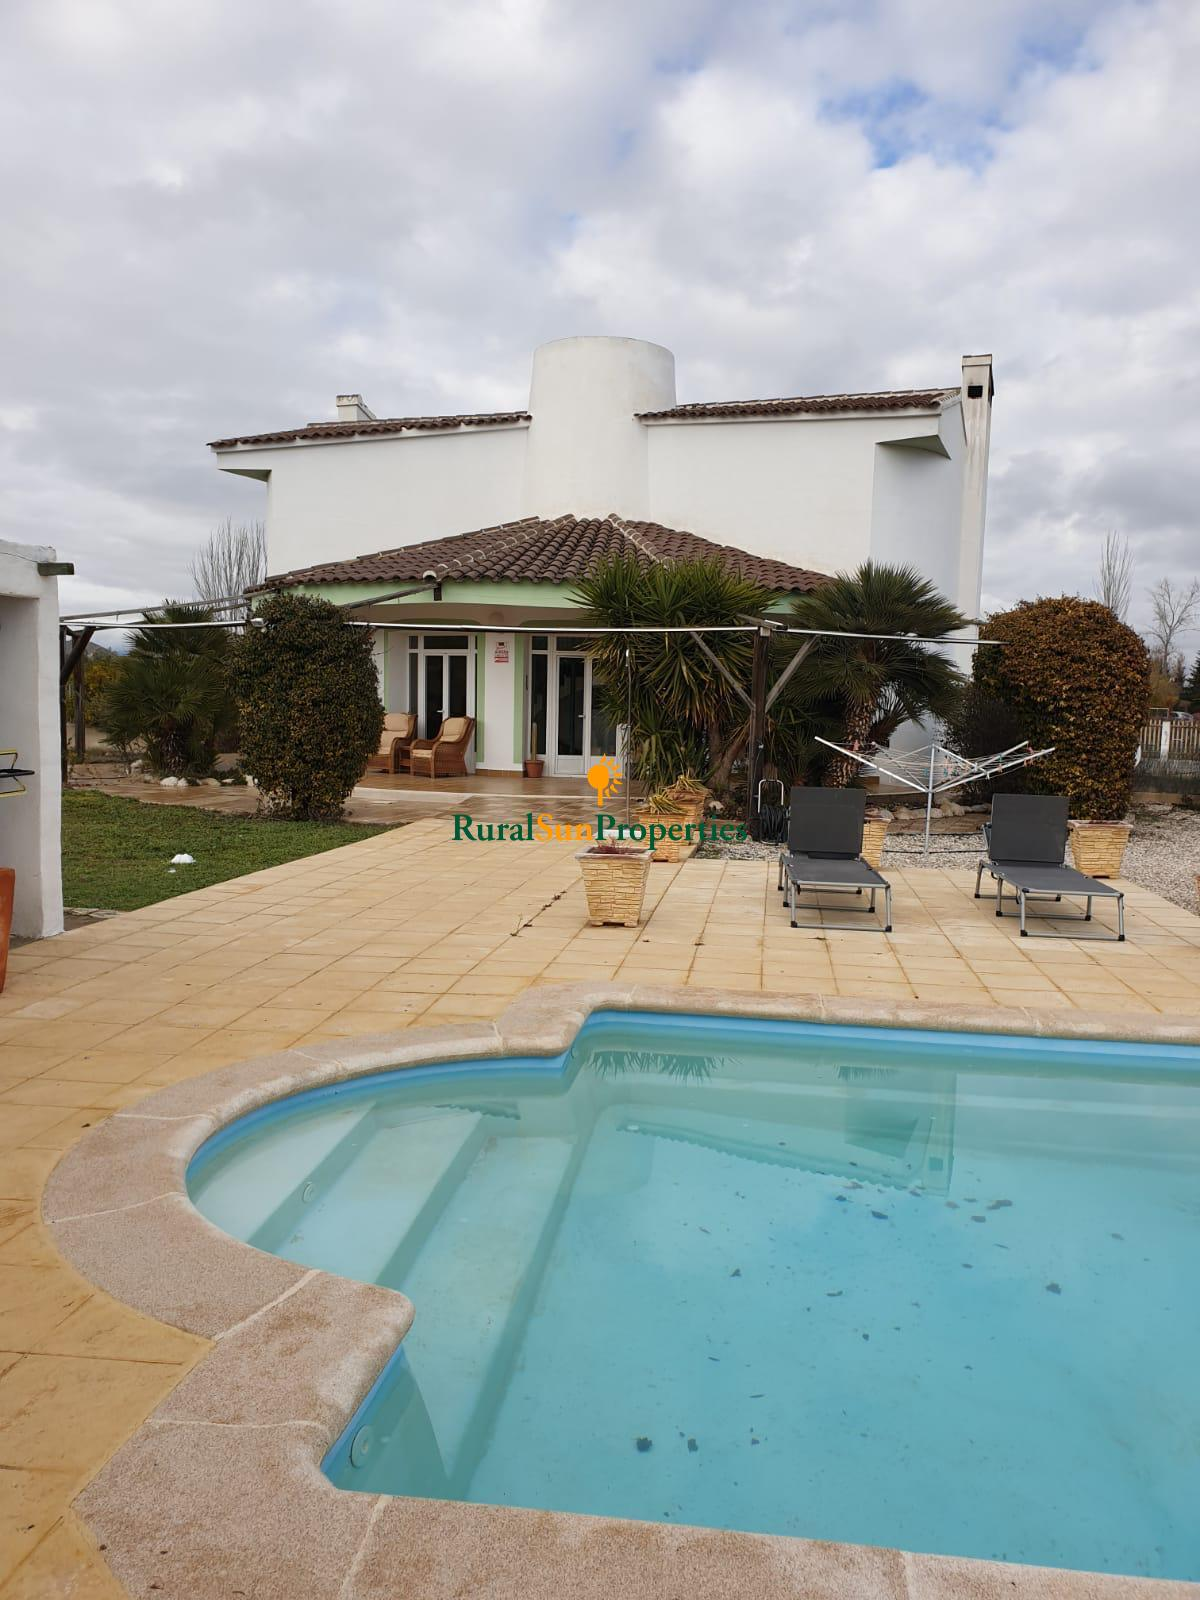 Country house for sale in Cehegin, Murcia